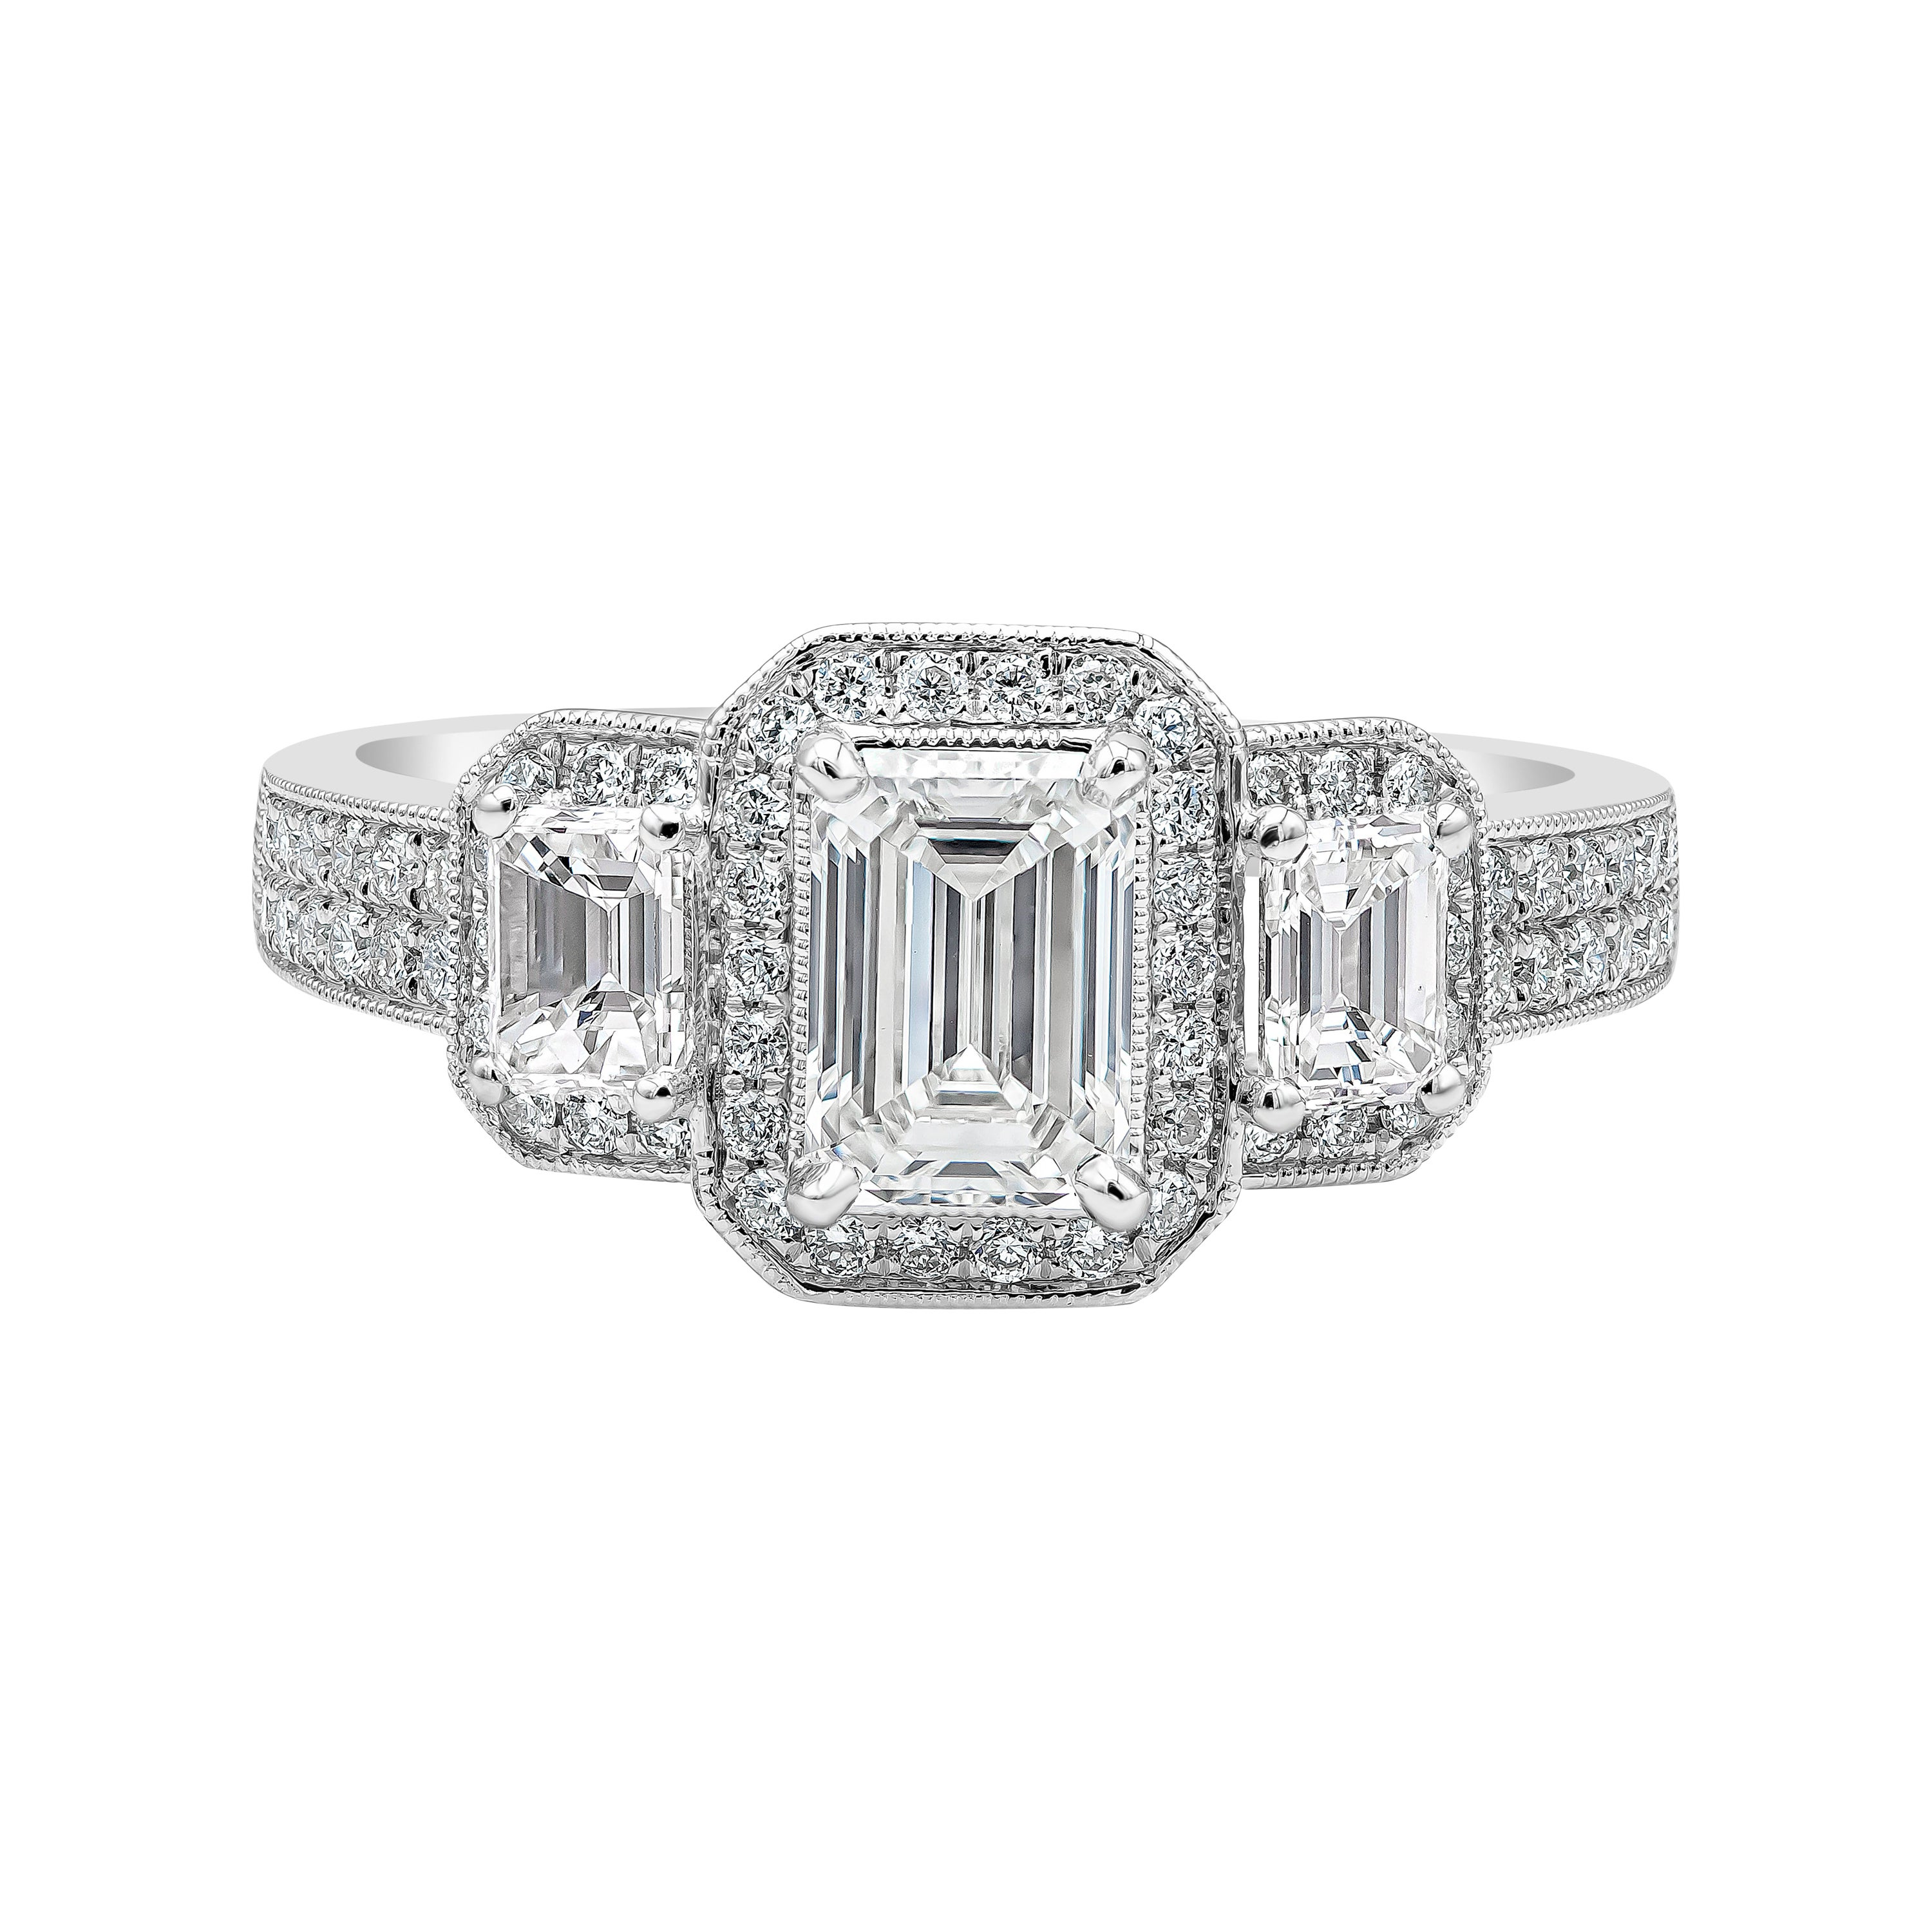 GIA Certified Emerald Cut Diamond Three-Stone Halo Engagement Ring